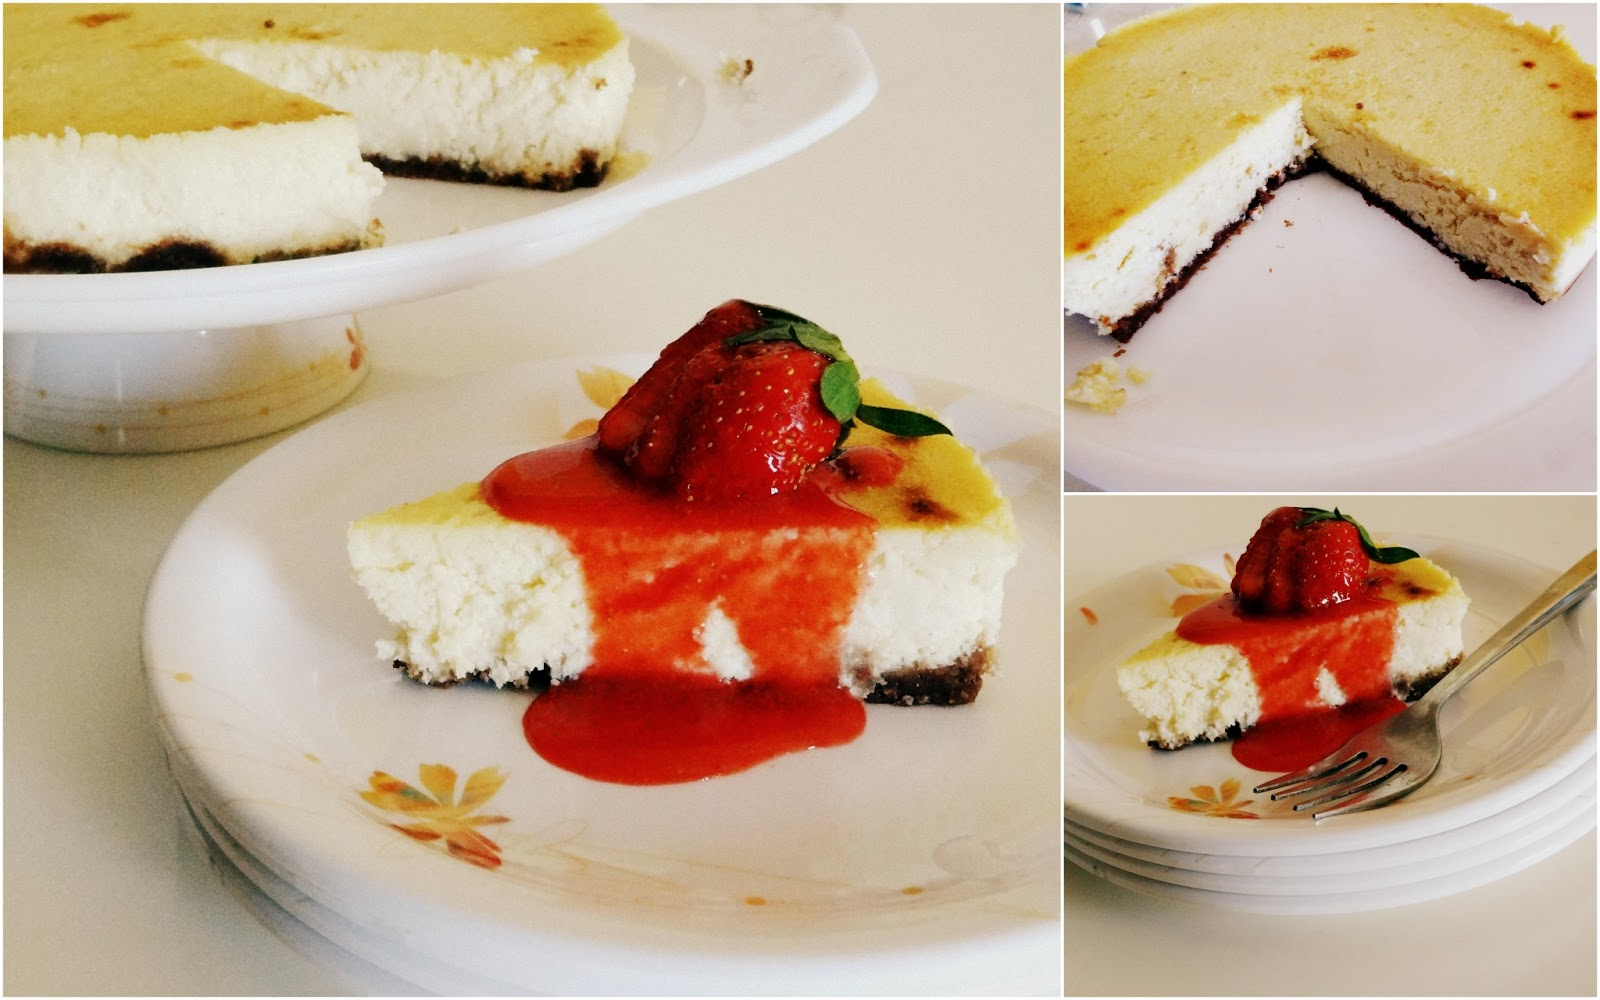 Soniaz Delights: Ricotta Cheesecake with Homemade Ricotta Cheese